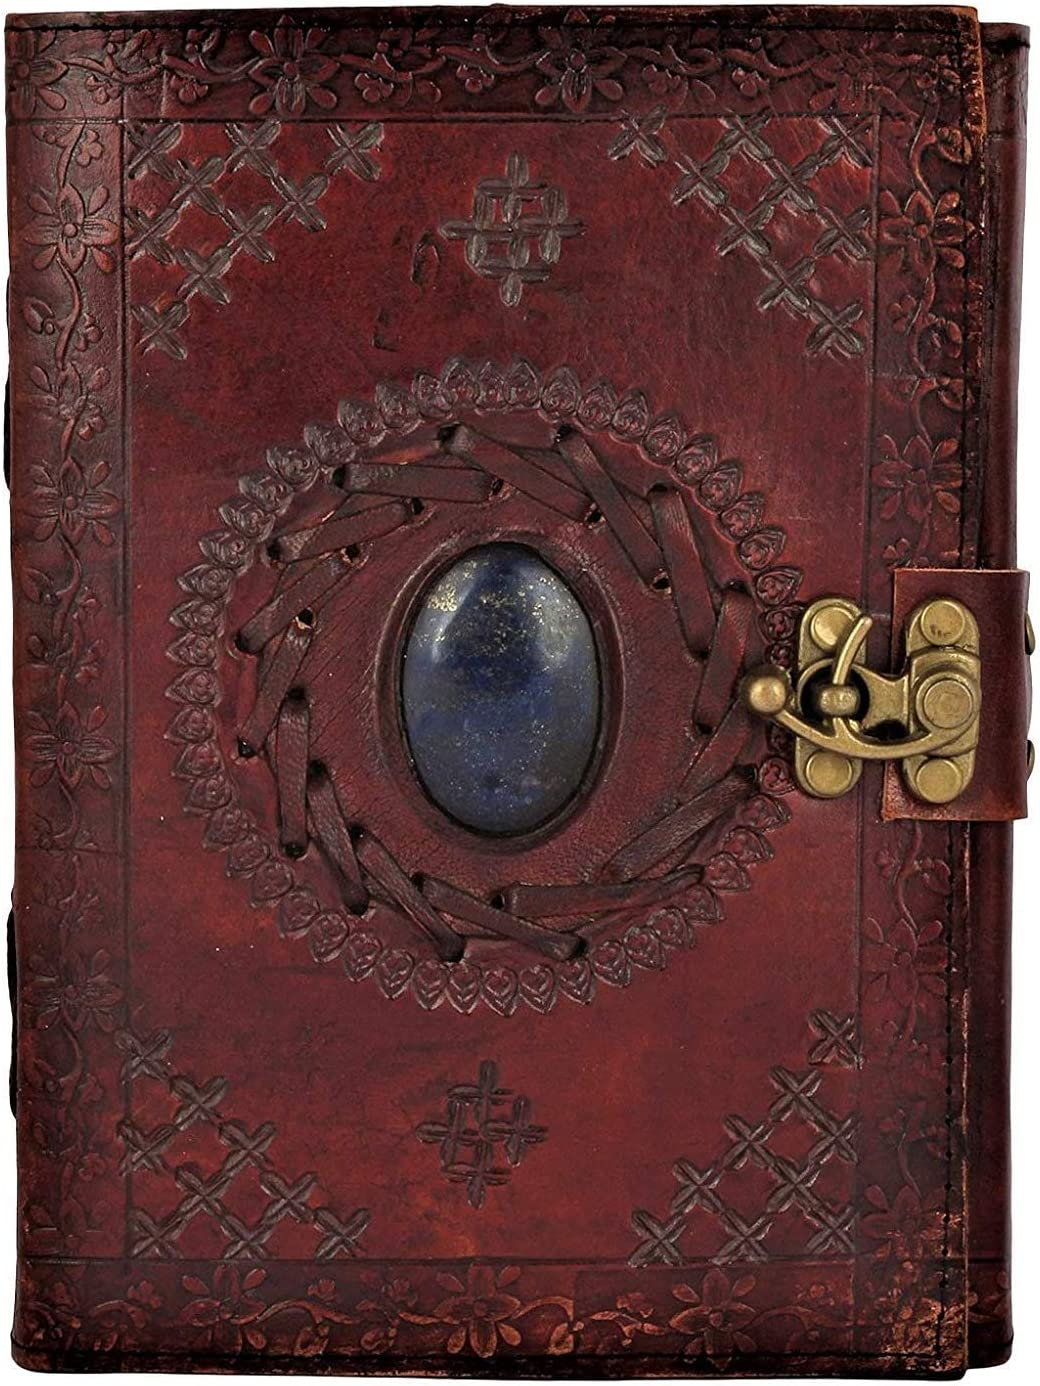 TUZECH Handmade Genuine 100% Pure Leather Vintage Diary Leather Journal for Office Home Daily Use with C Lock 7 Inches (Brown)